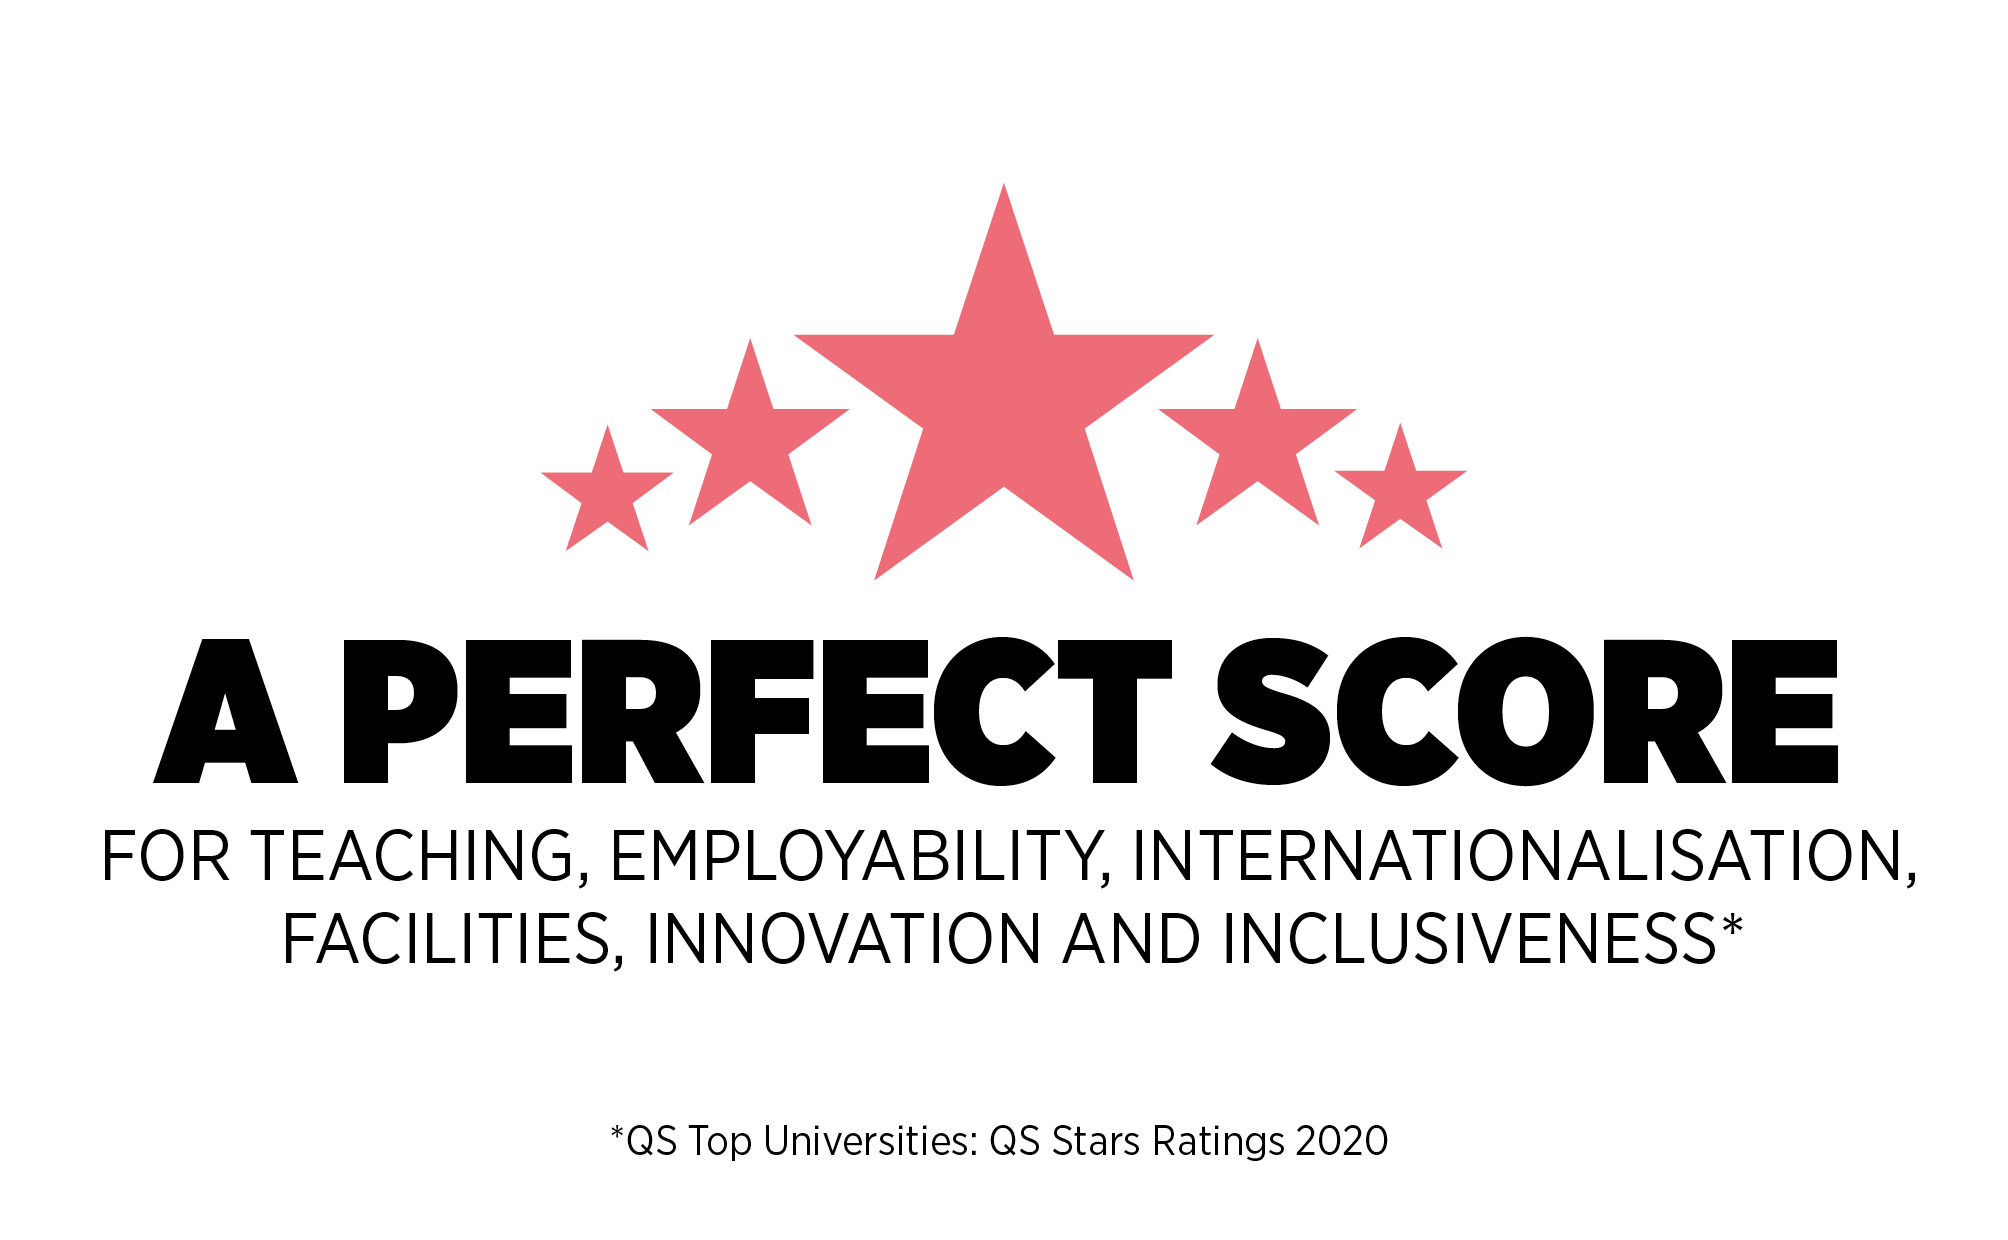 A Perfect Score for teaching, employability, internationalisation, facilities, innovation and inclusiveness